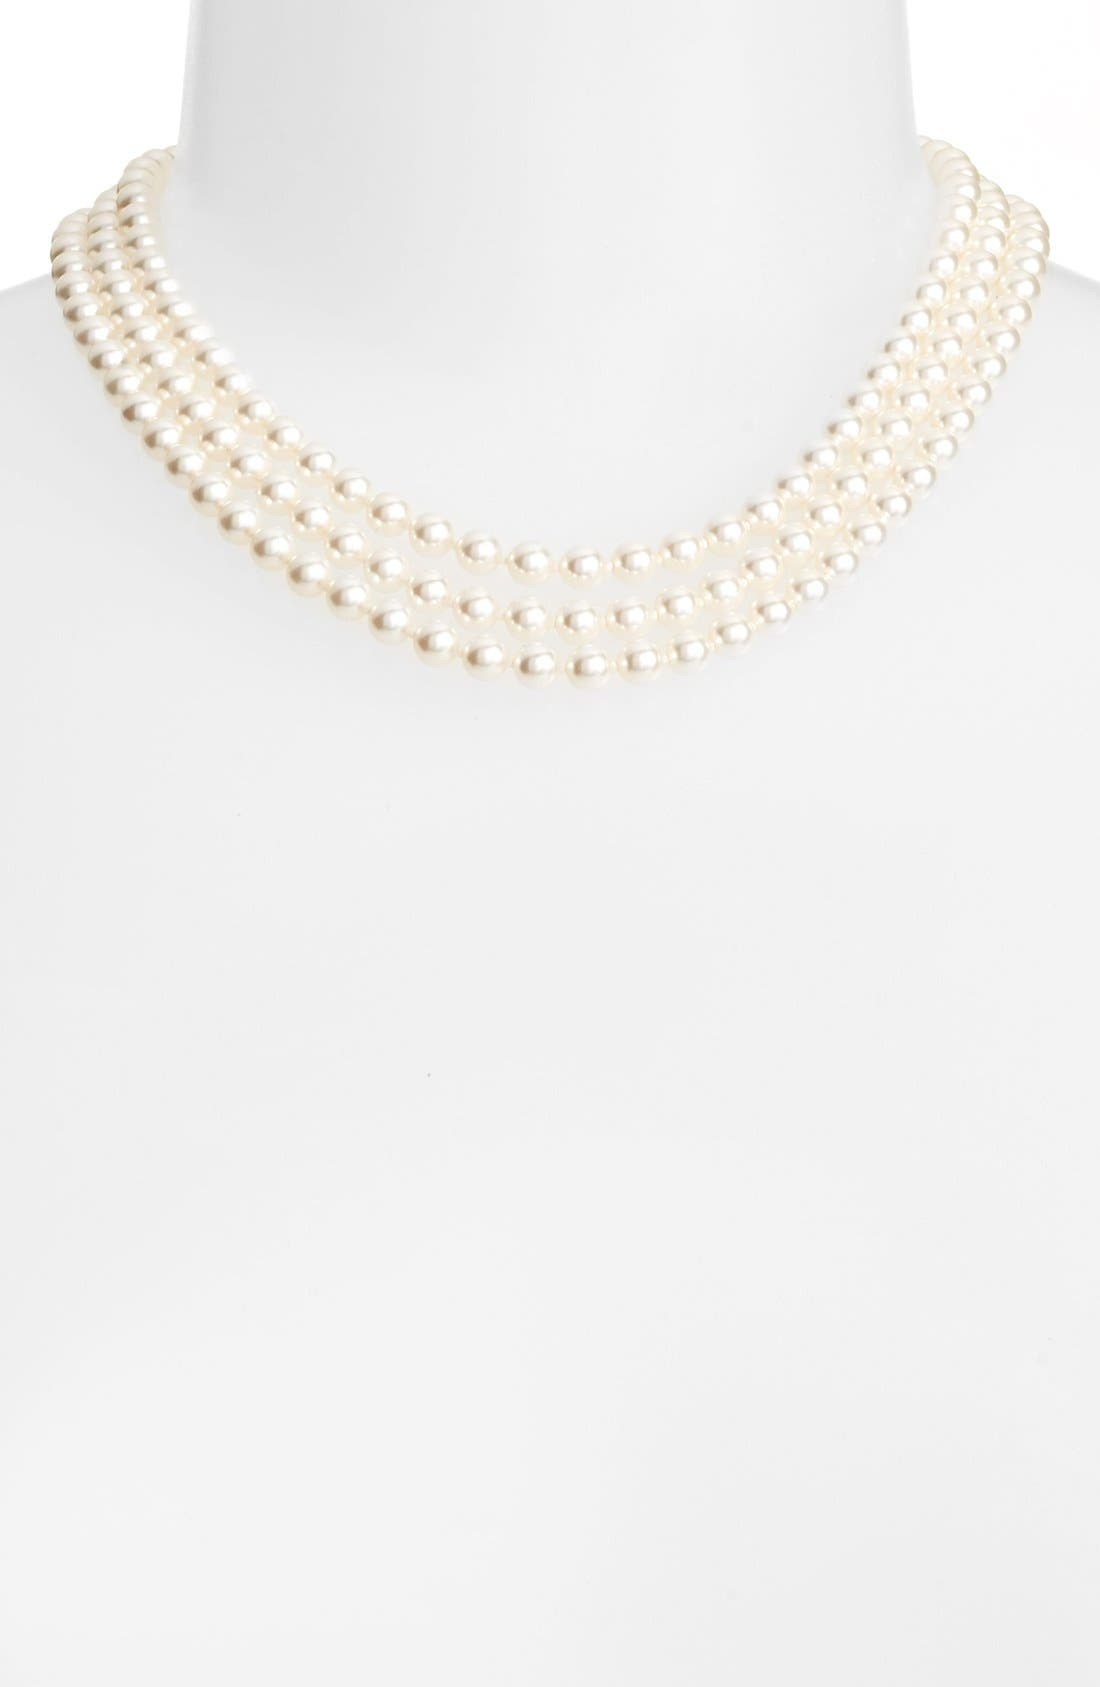 Multistrand Imitation Pearl Necklace,                         Main,                         color, Ivory